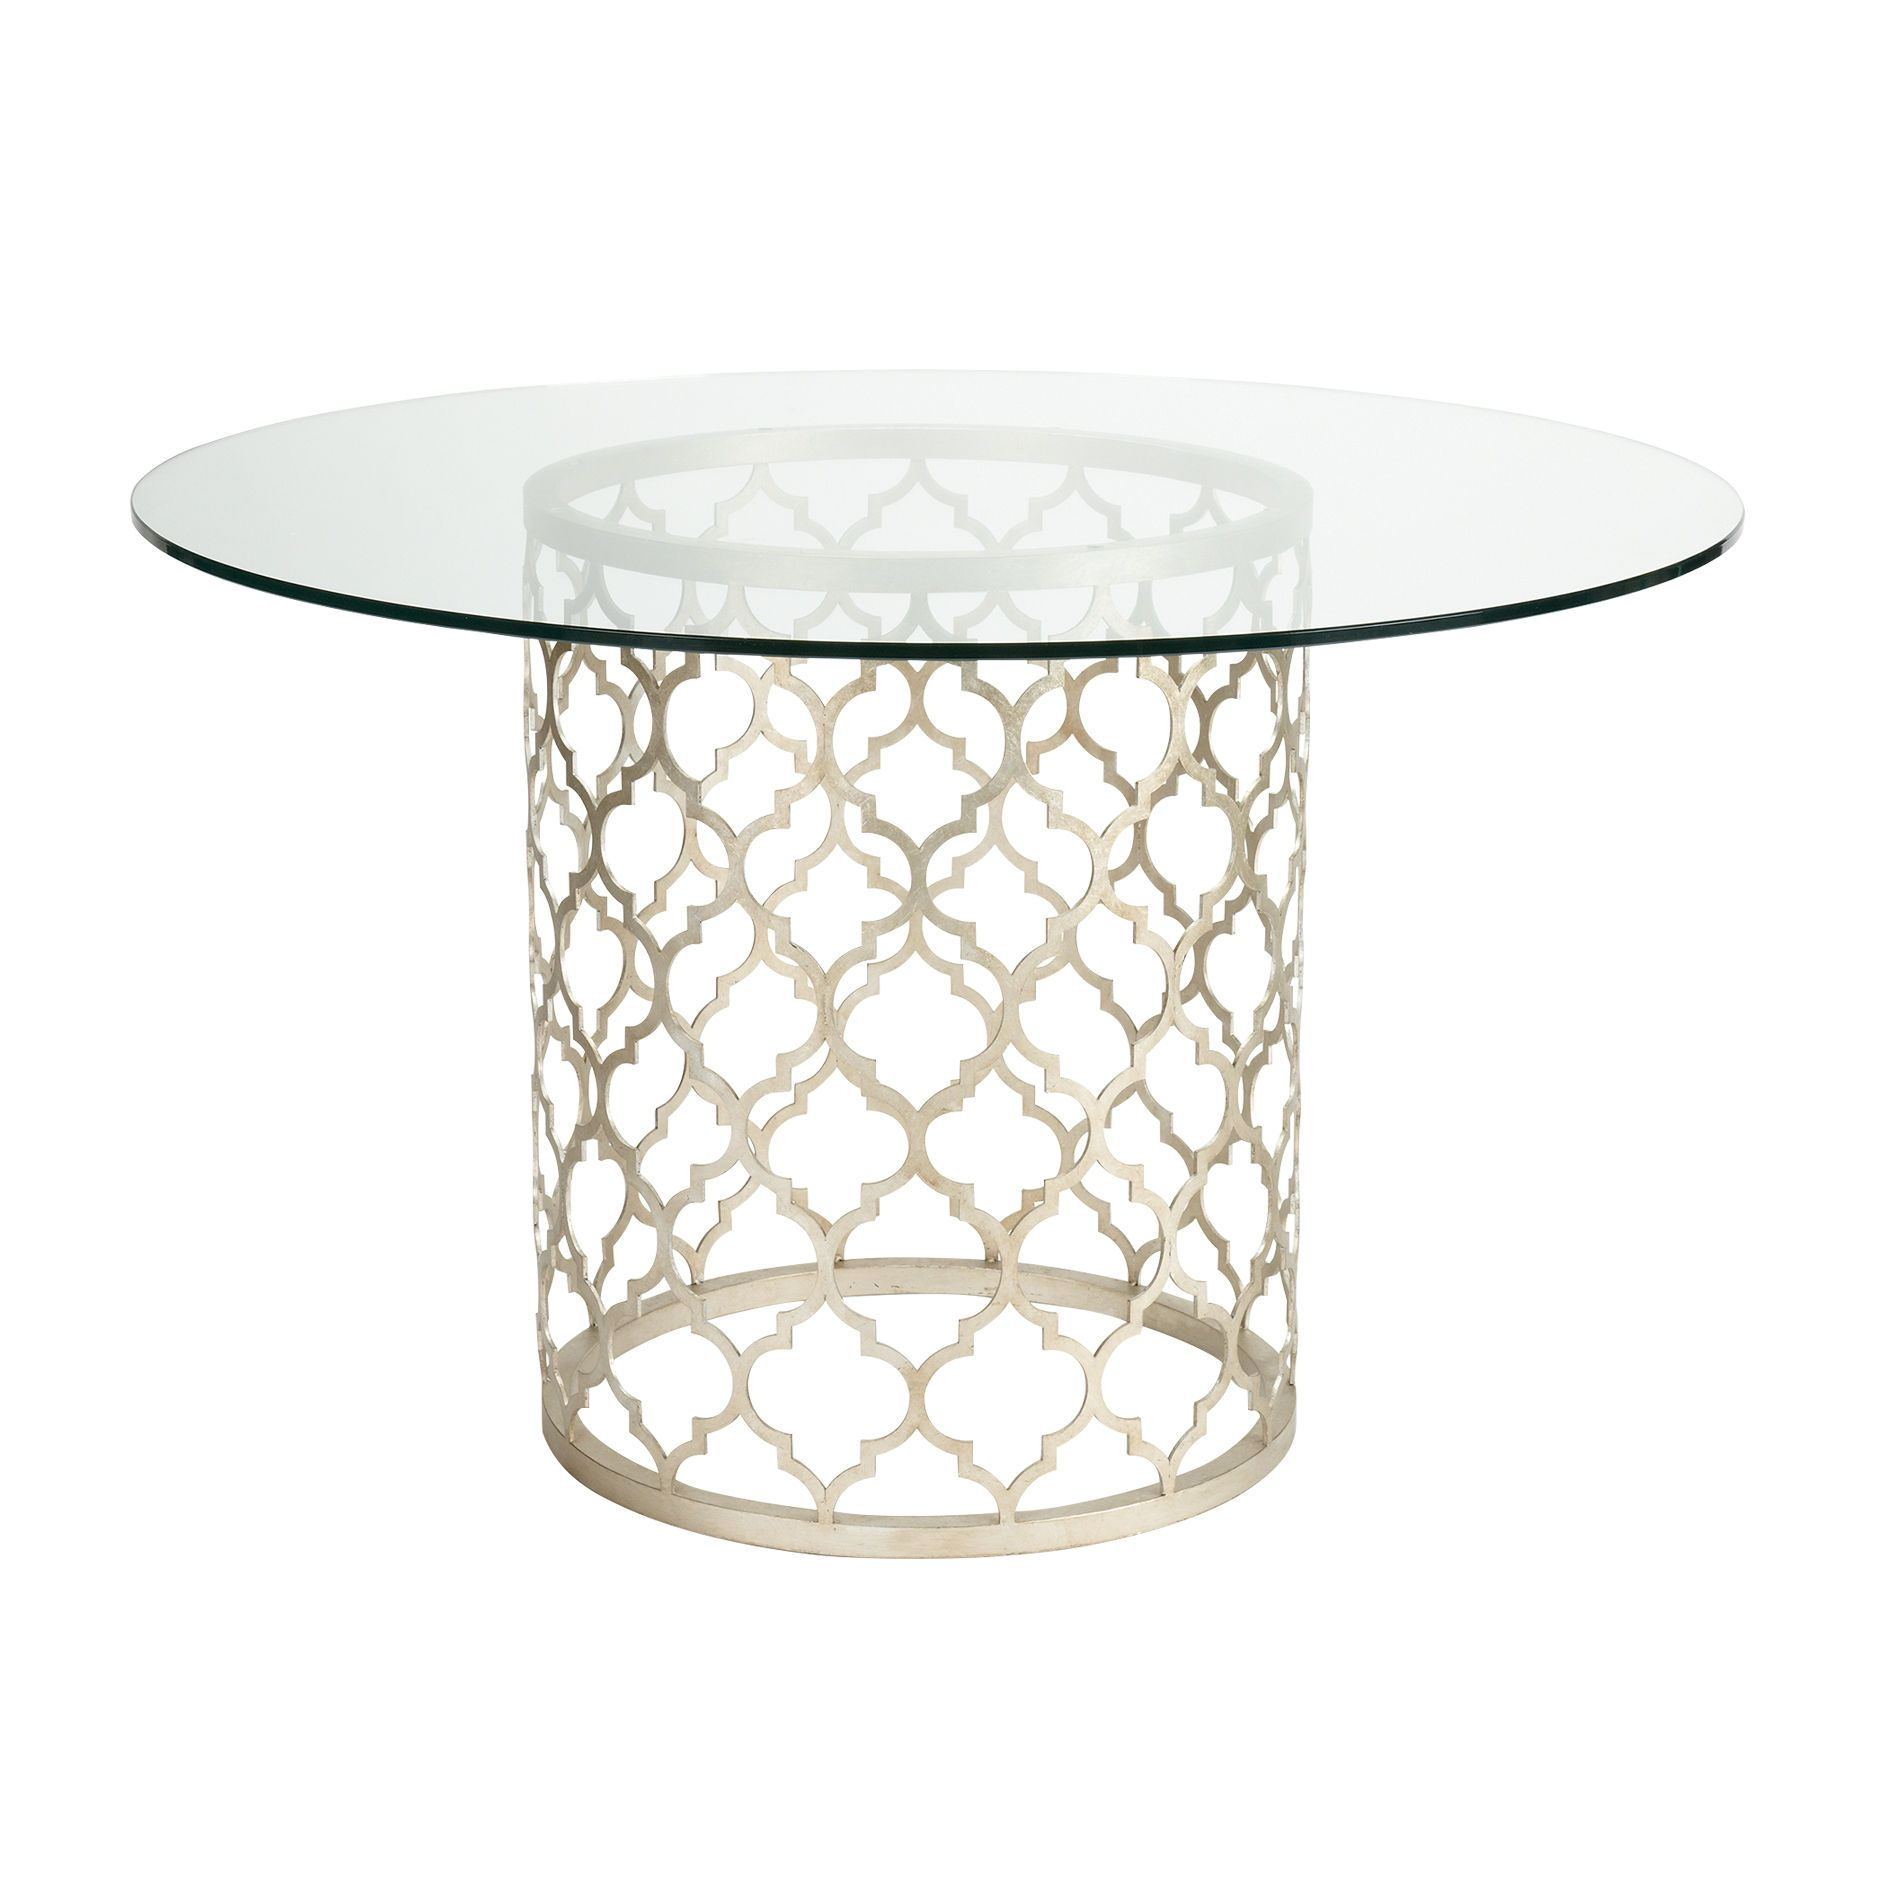 Tracery Dining Table Ethan Allen Us Glass Round Dining Table Dining Table Furniture Dining Room Table